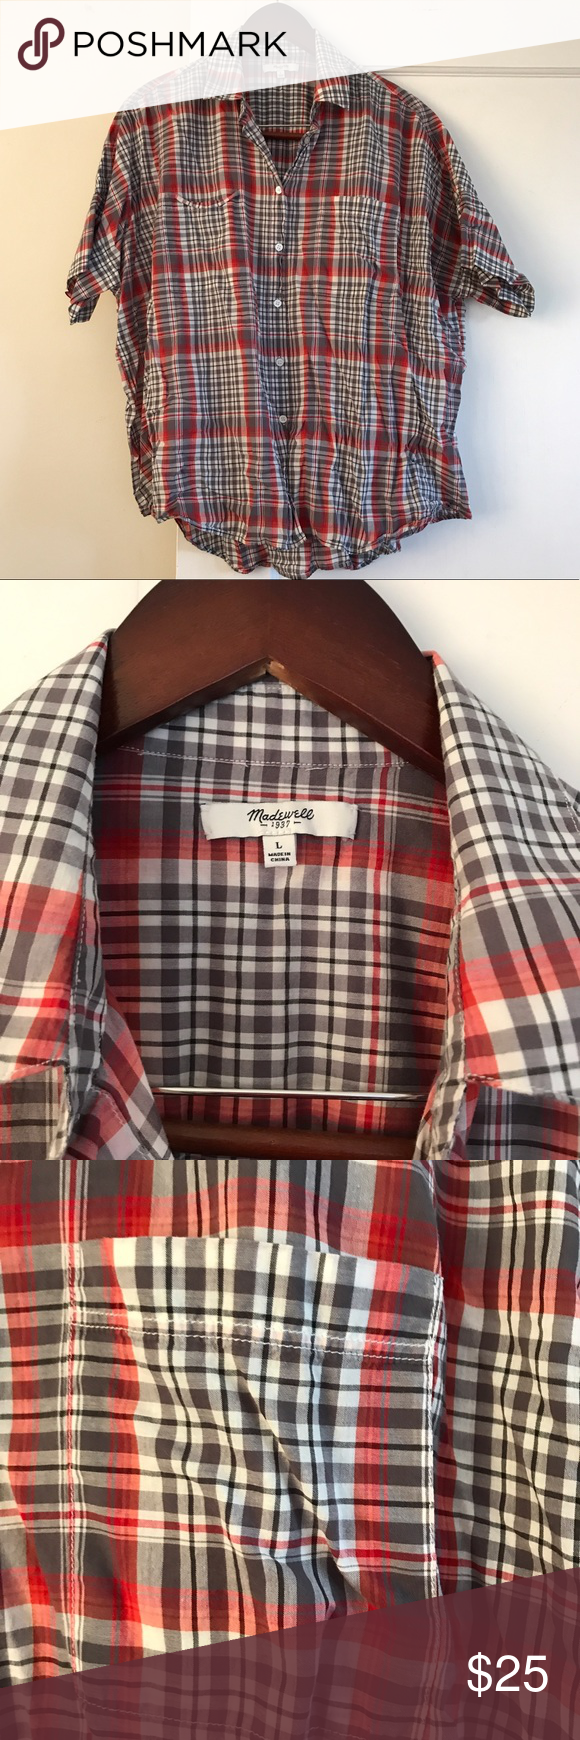 Red & grey plaid Madewell Courier shirt. Needs an iron  but in like new condition! Worn a couple of times and laundered. % cotton. Has boxy, oversized fit. Sold out on Madewell.com. Madewell Tops Button Down Shirts